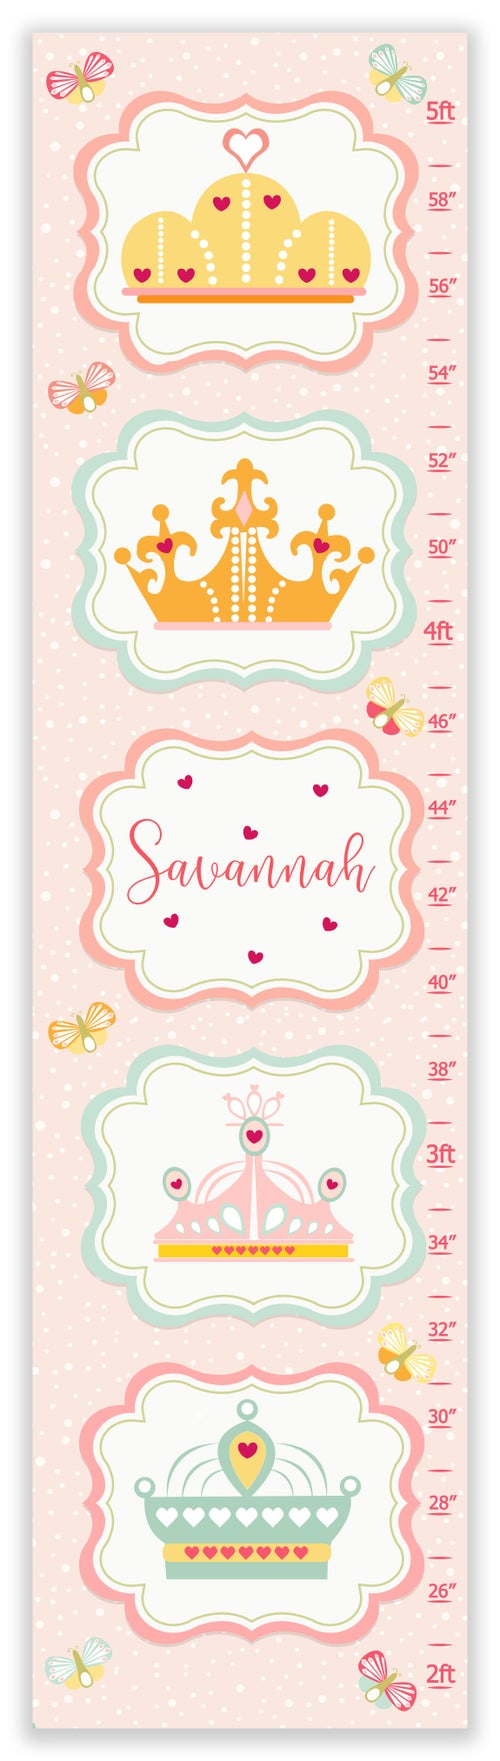 Image of Sweet Princess Crowns - Personalized Pink Canvas Growth Chart